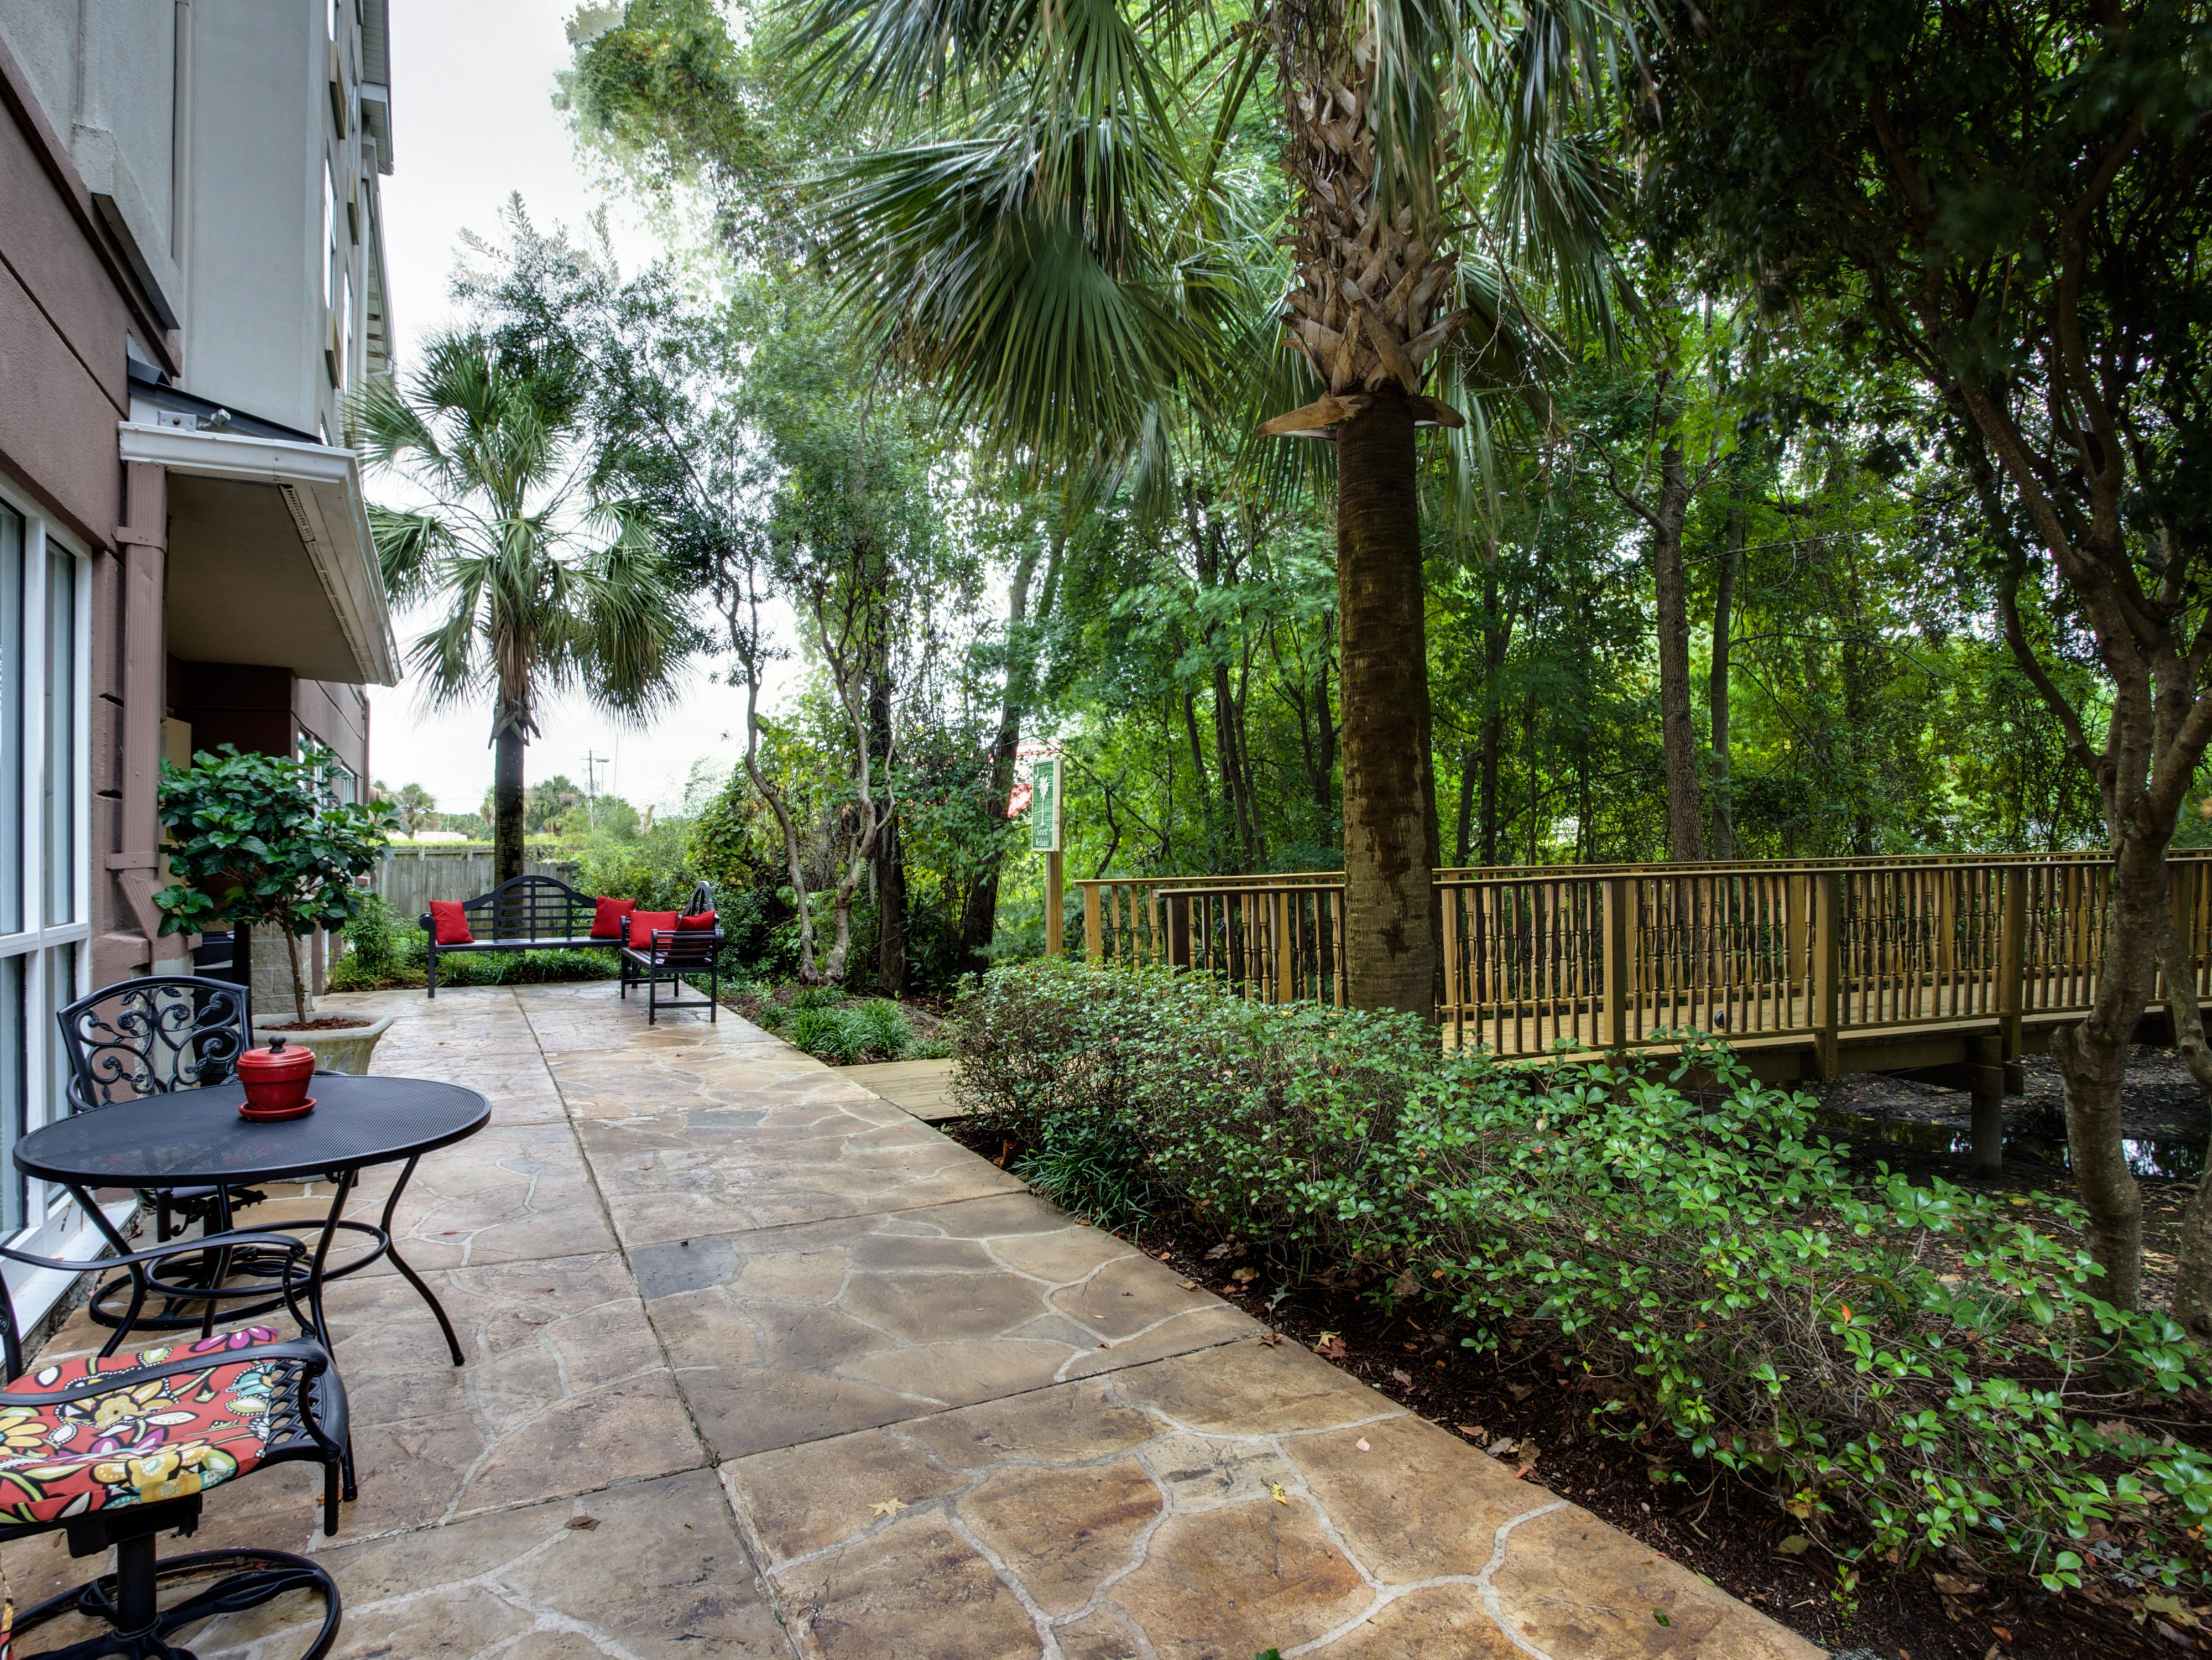 Relax on the Patio amidst our natural wetlands